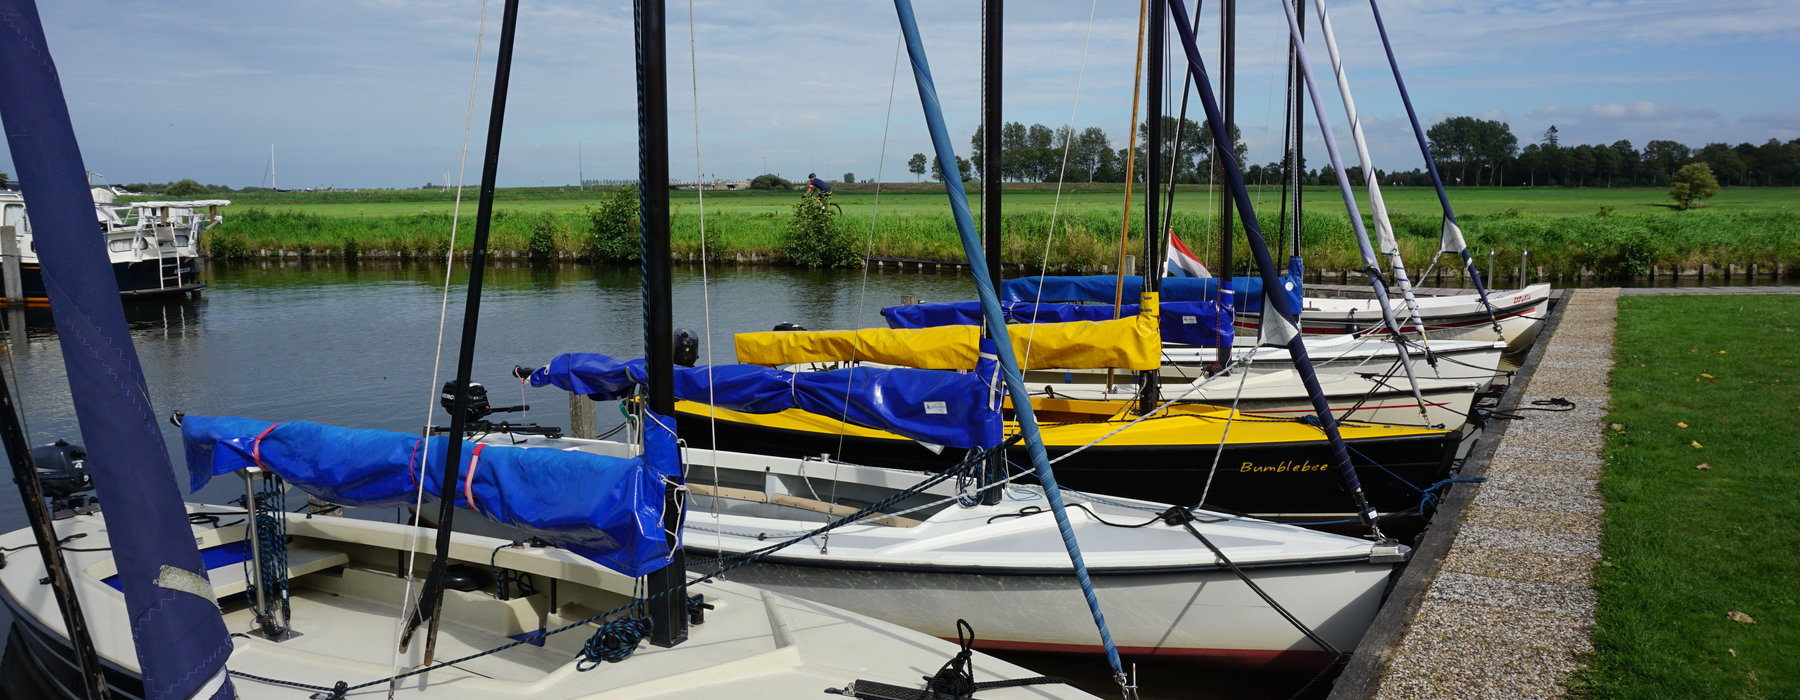 Sailboat rentals in Friesland